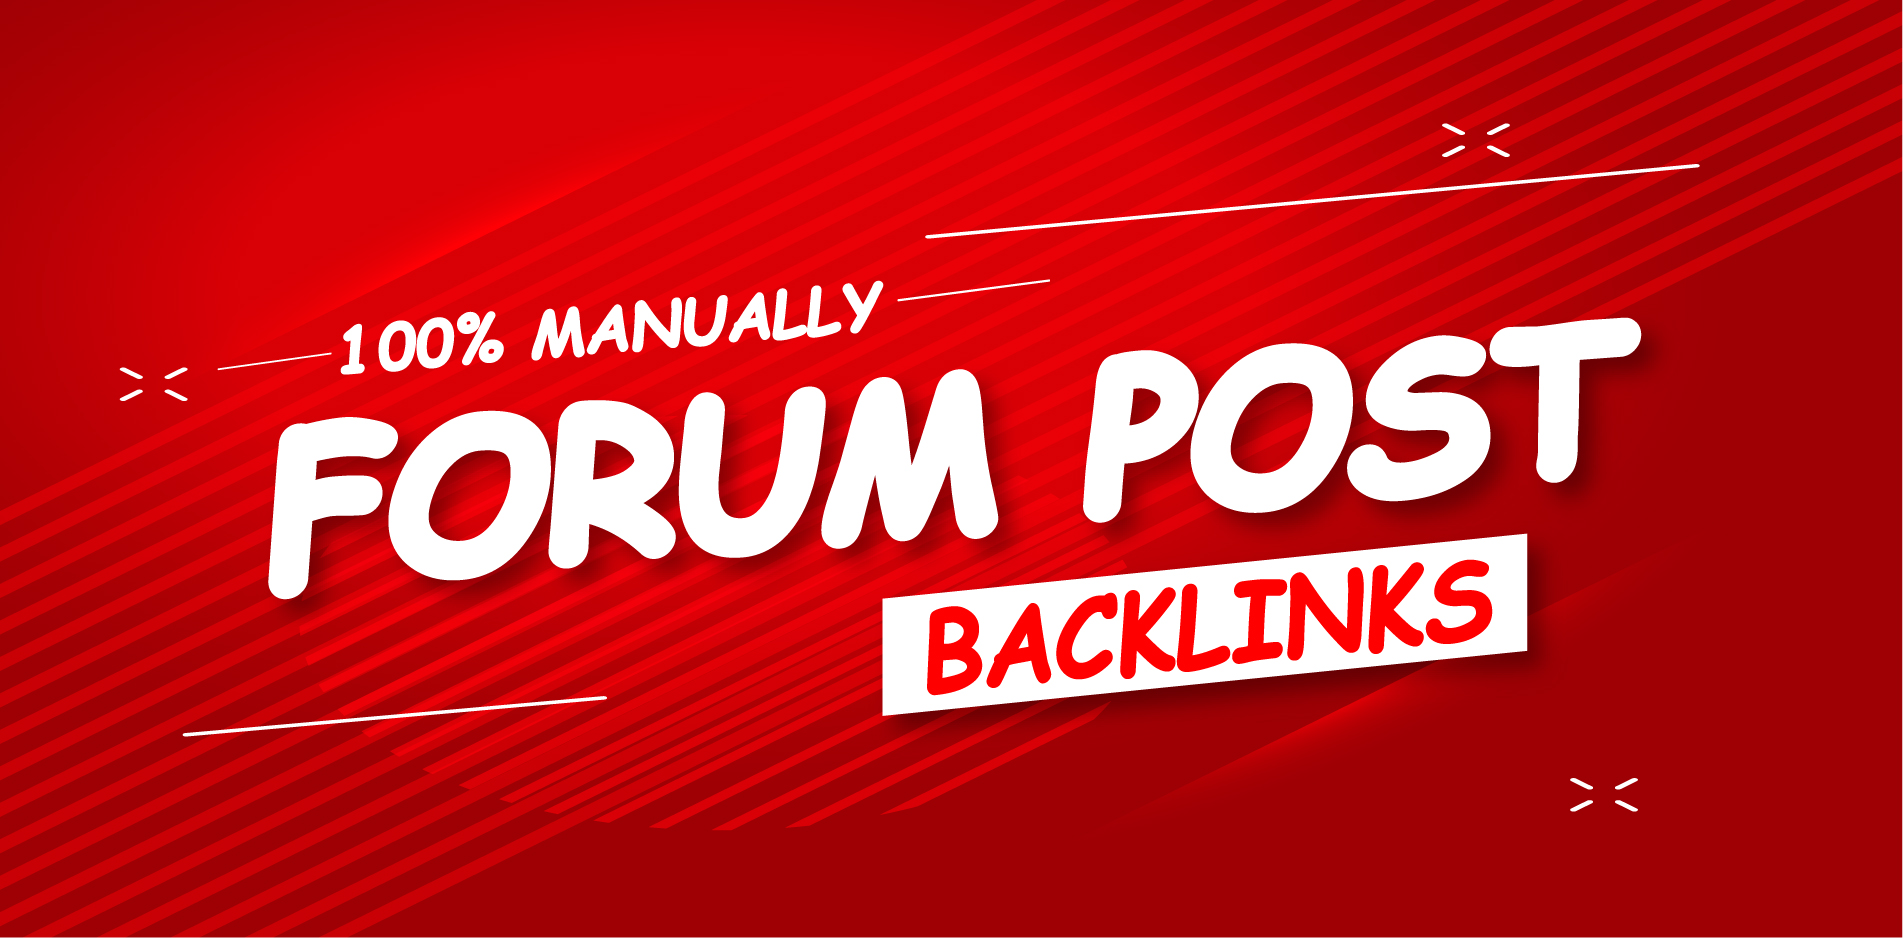 50 low obl forum posting backlinks to boost your website ranking